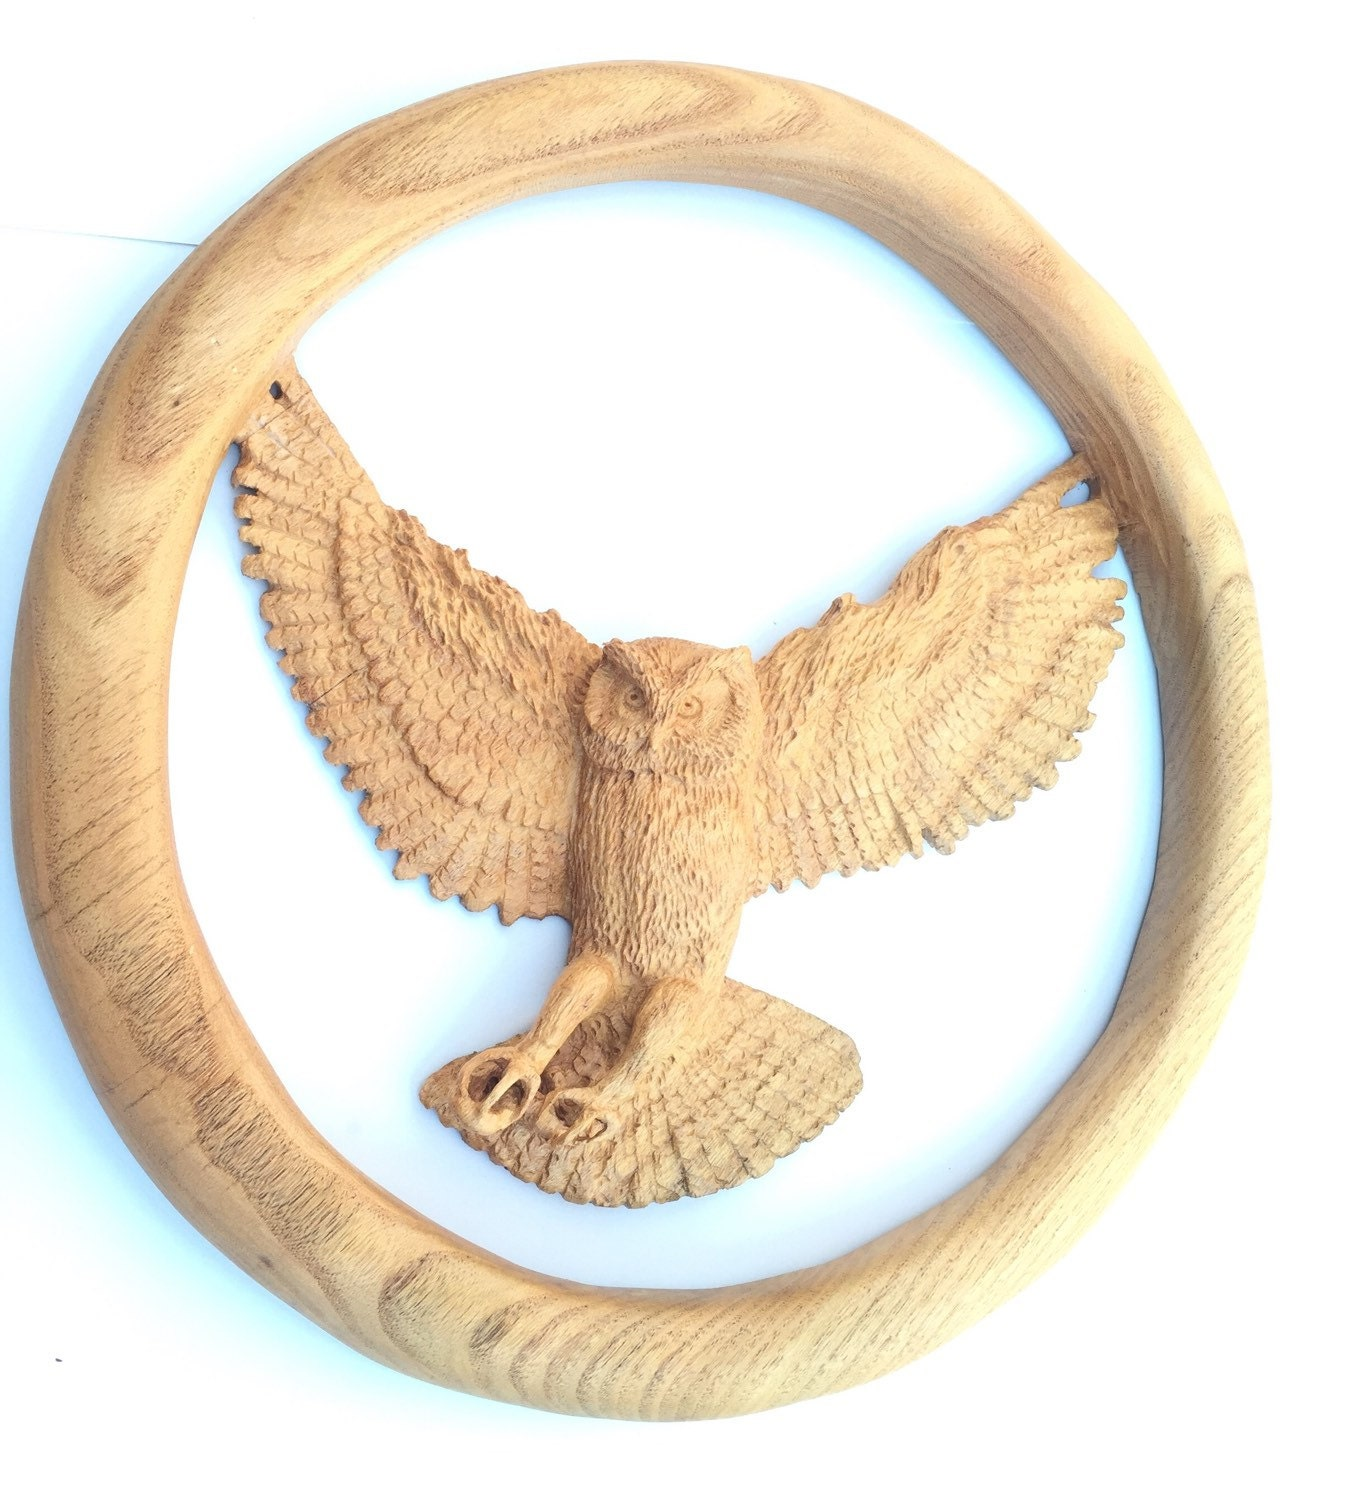 Owl wood sculpture hand carved carving by